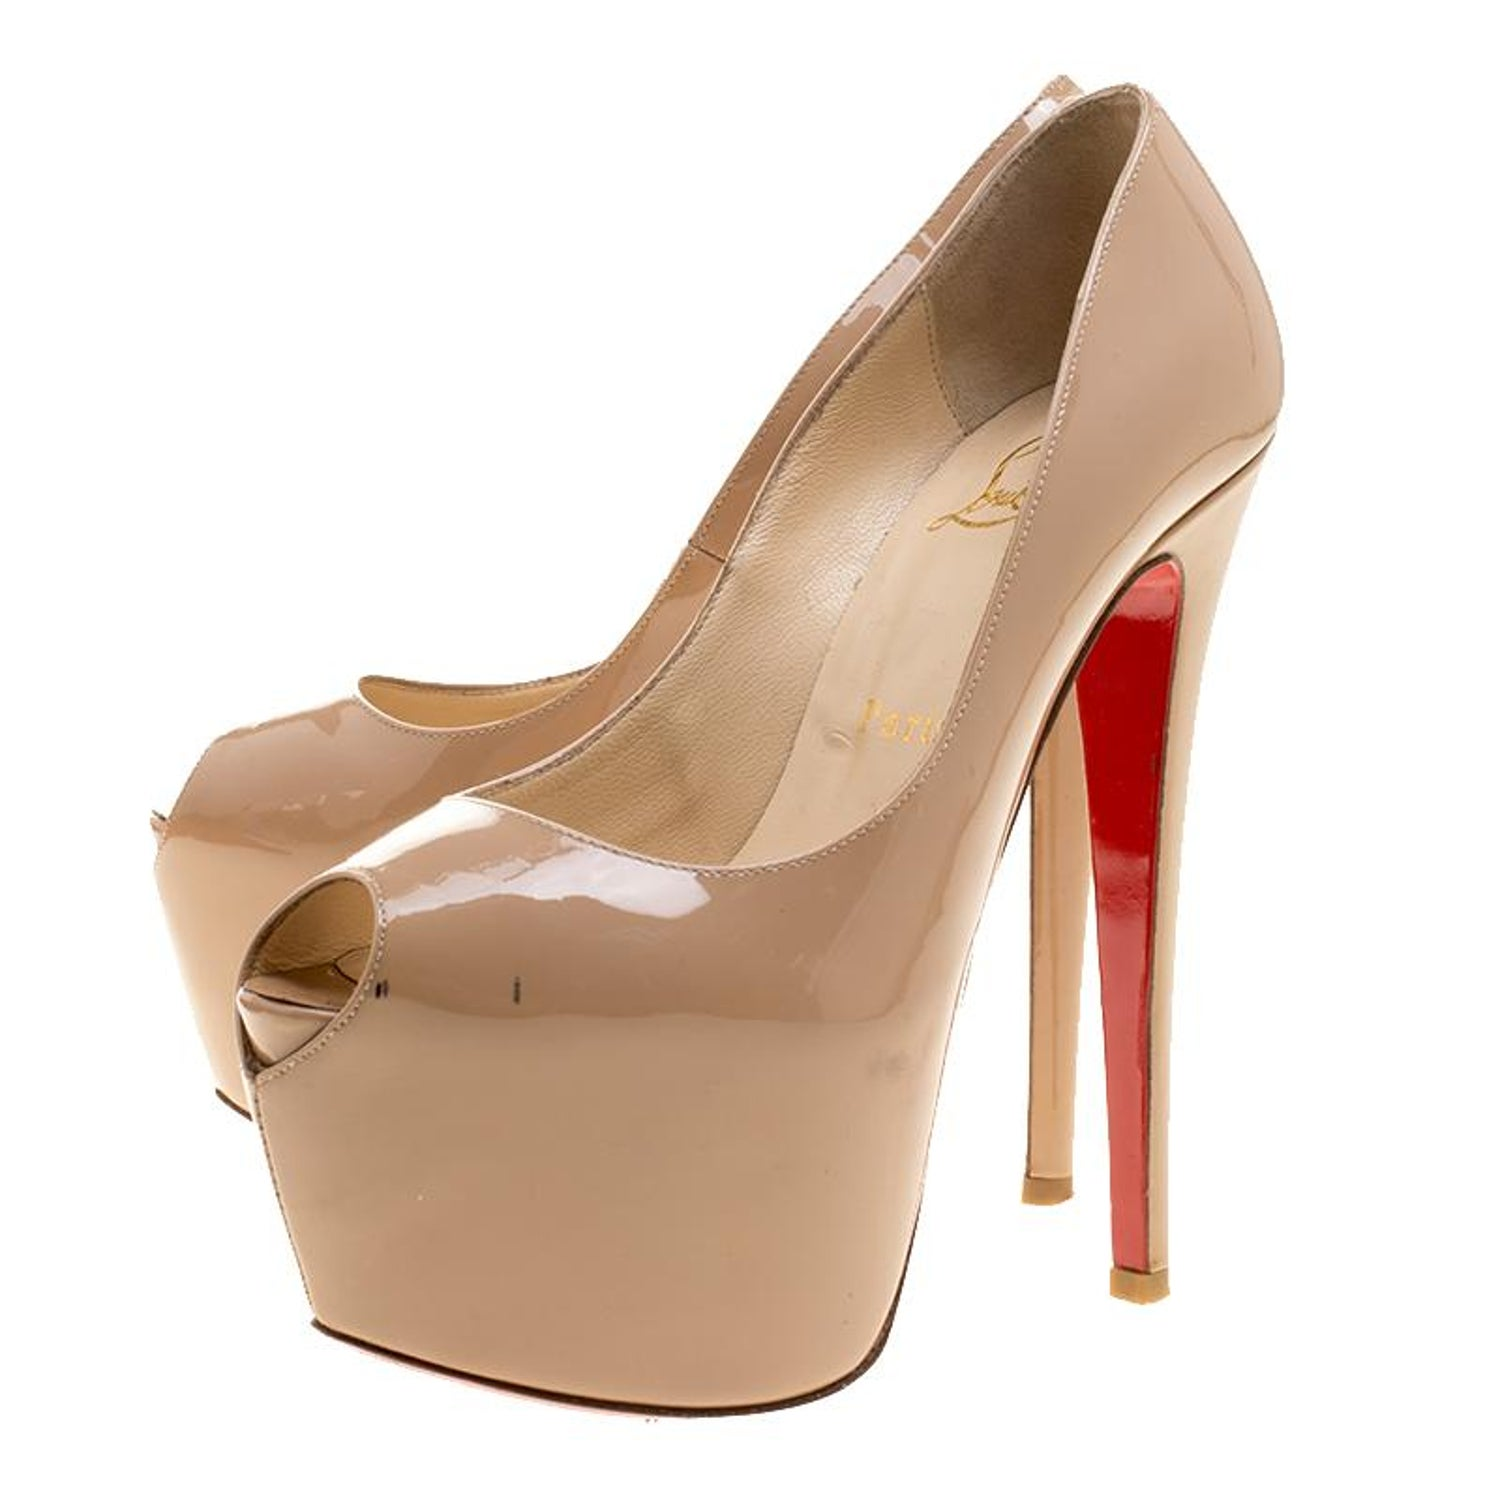 cheap for discount 63bc0 e02ab Christian Louboutin Beige Patent Leather Highness Peep Toe Platform Pumps  Size 3